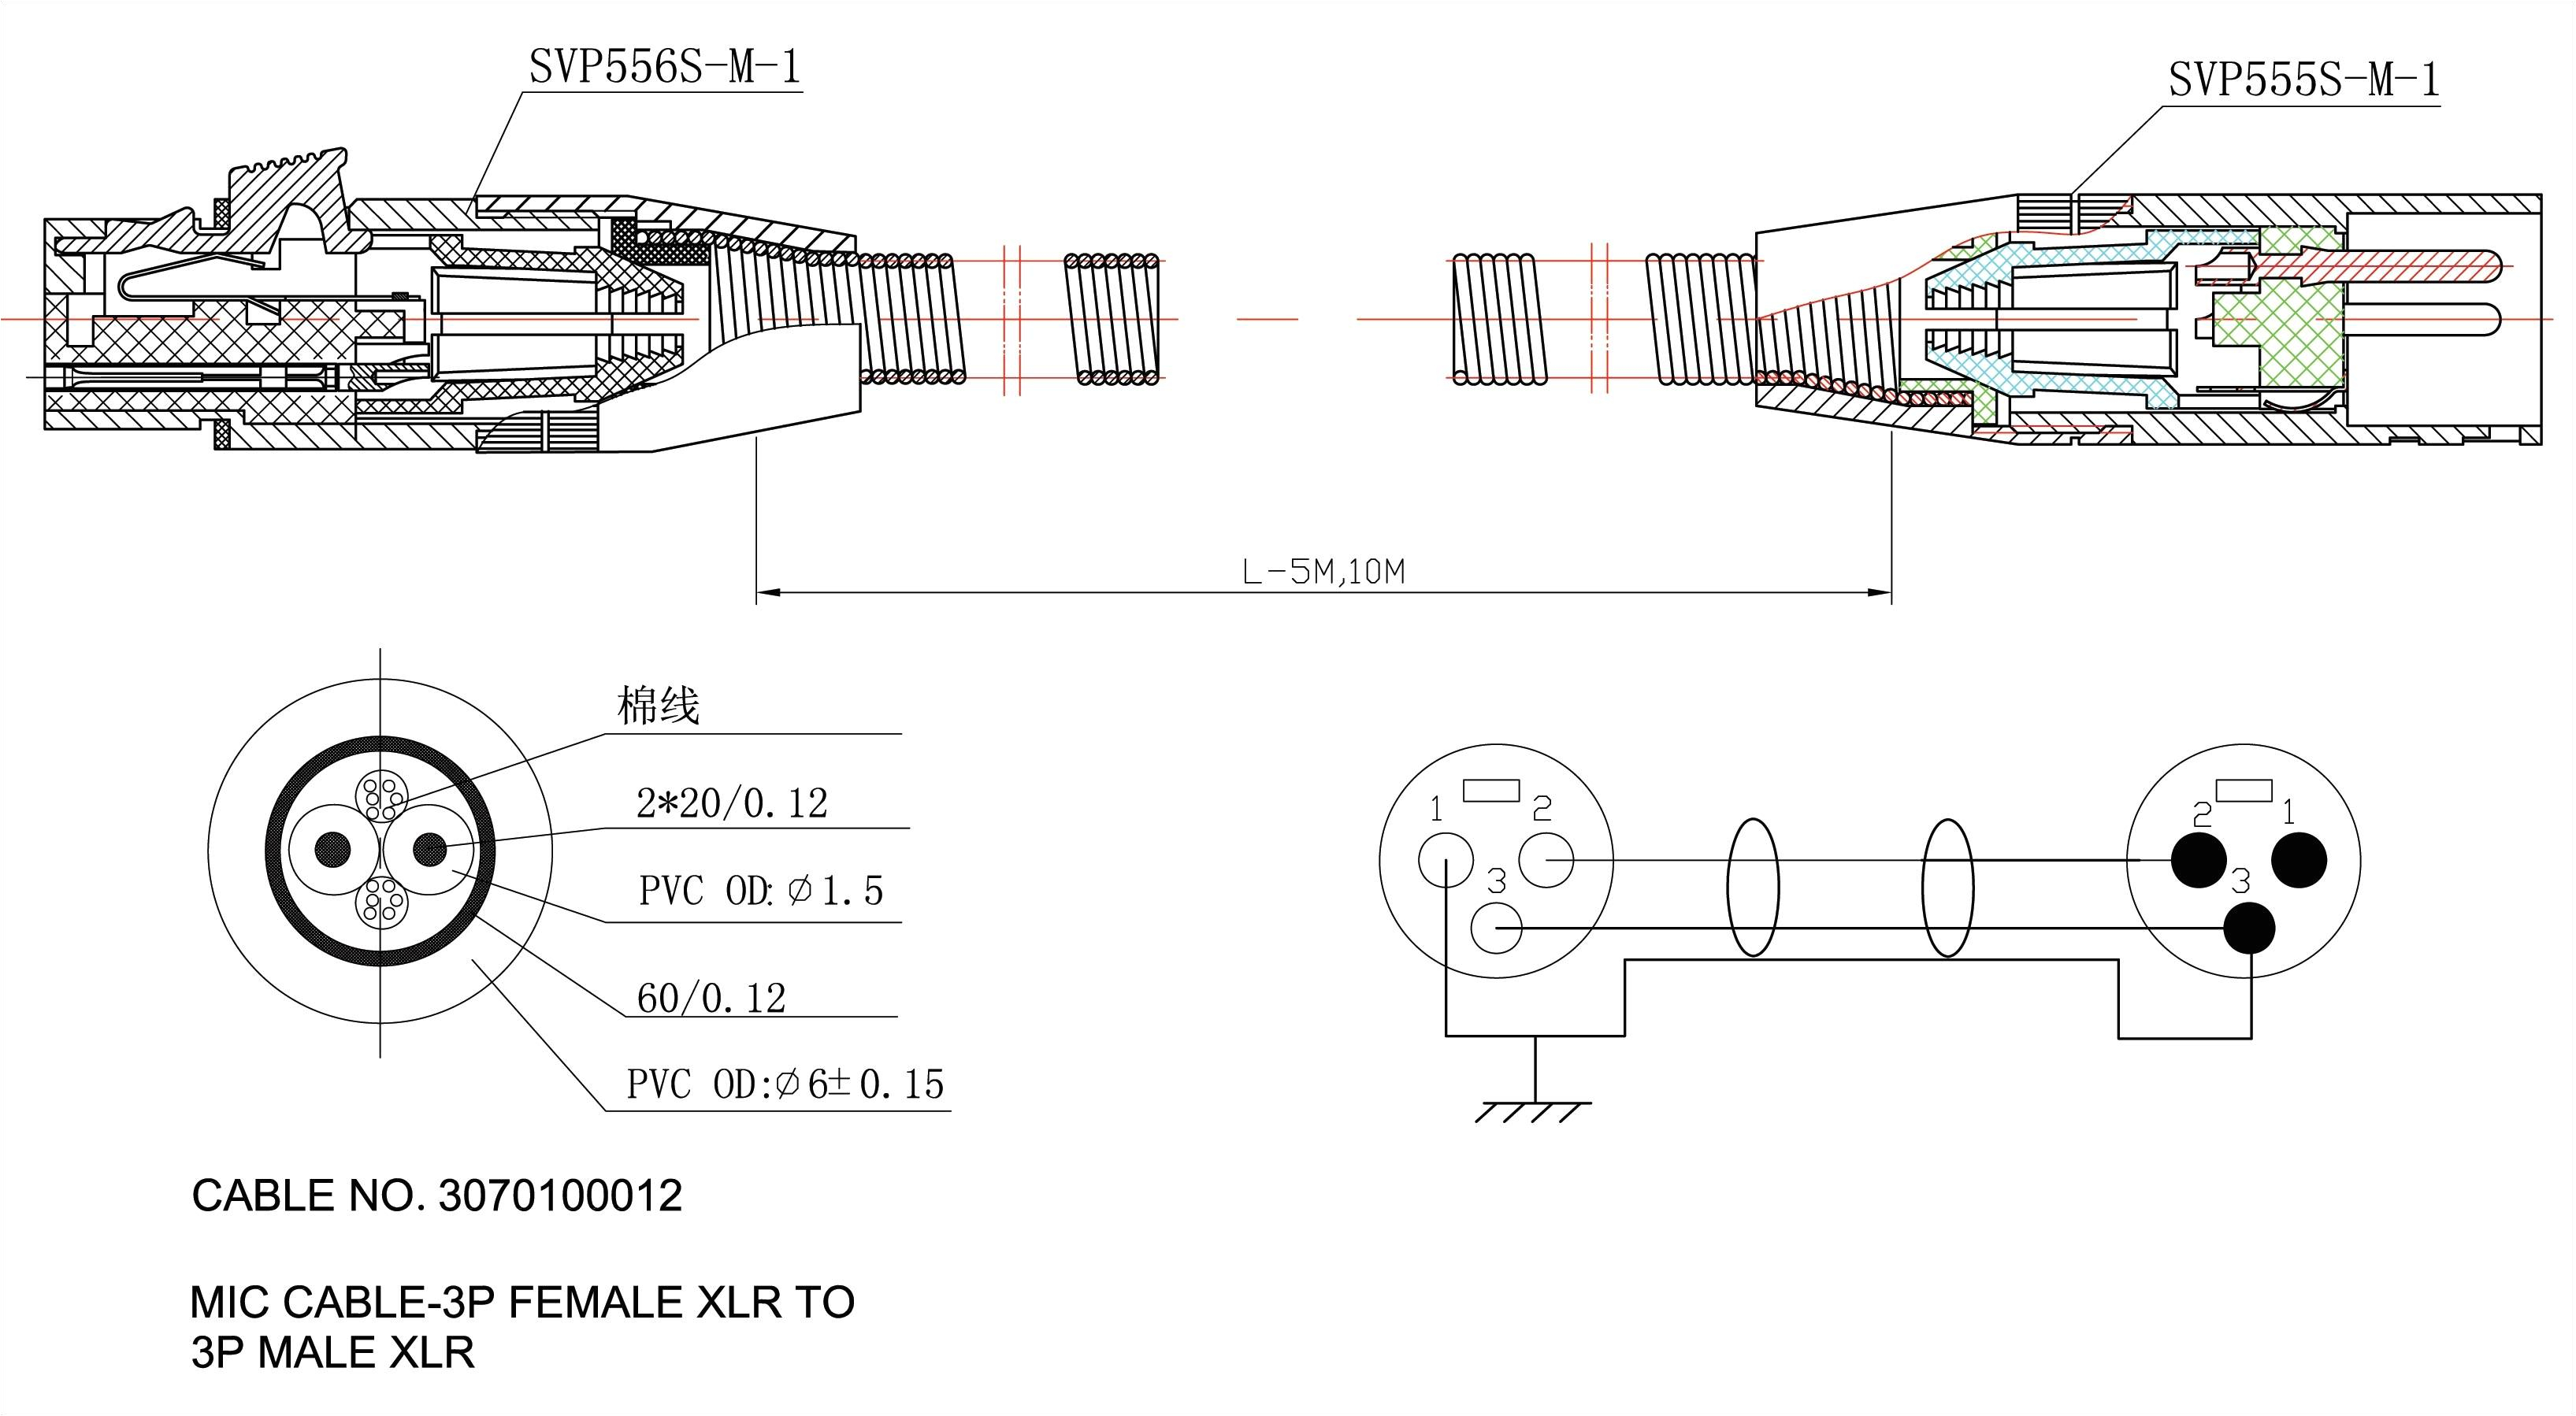 rj31x wiring to a cat 5 cable wiring diagram load rj31x wiring to a cat 5 cable